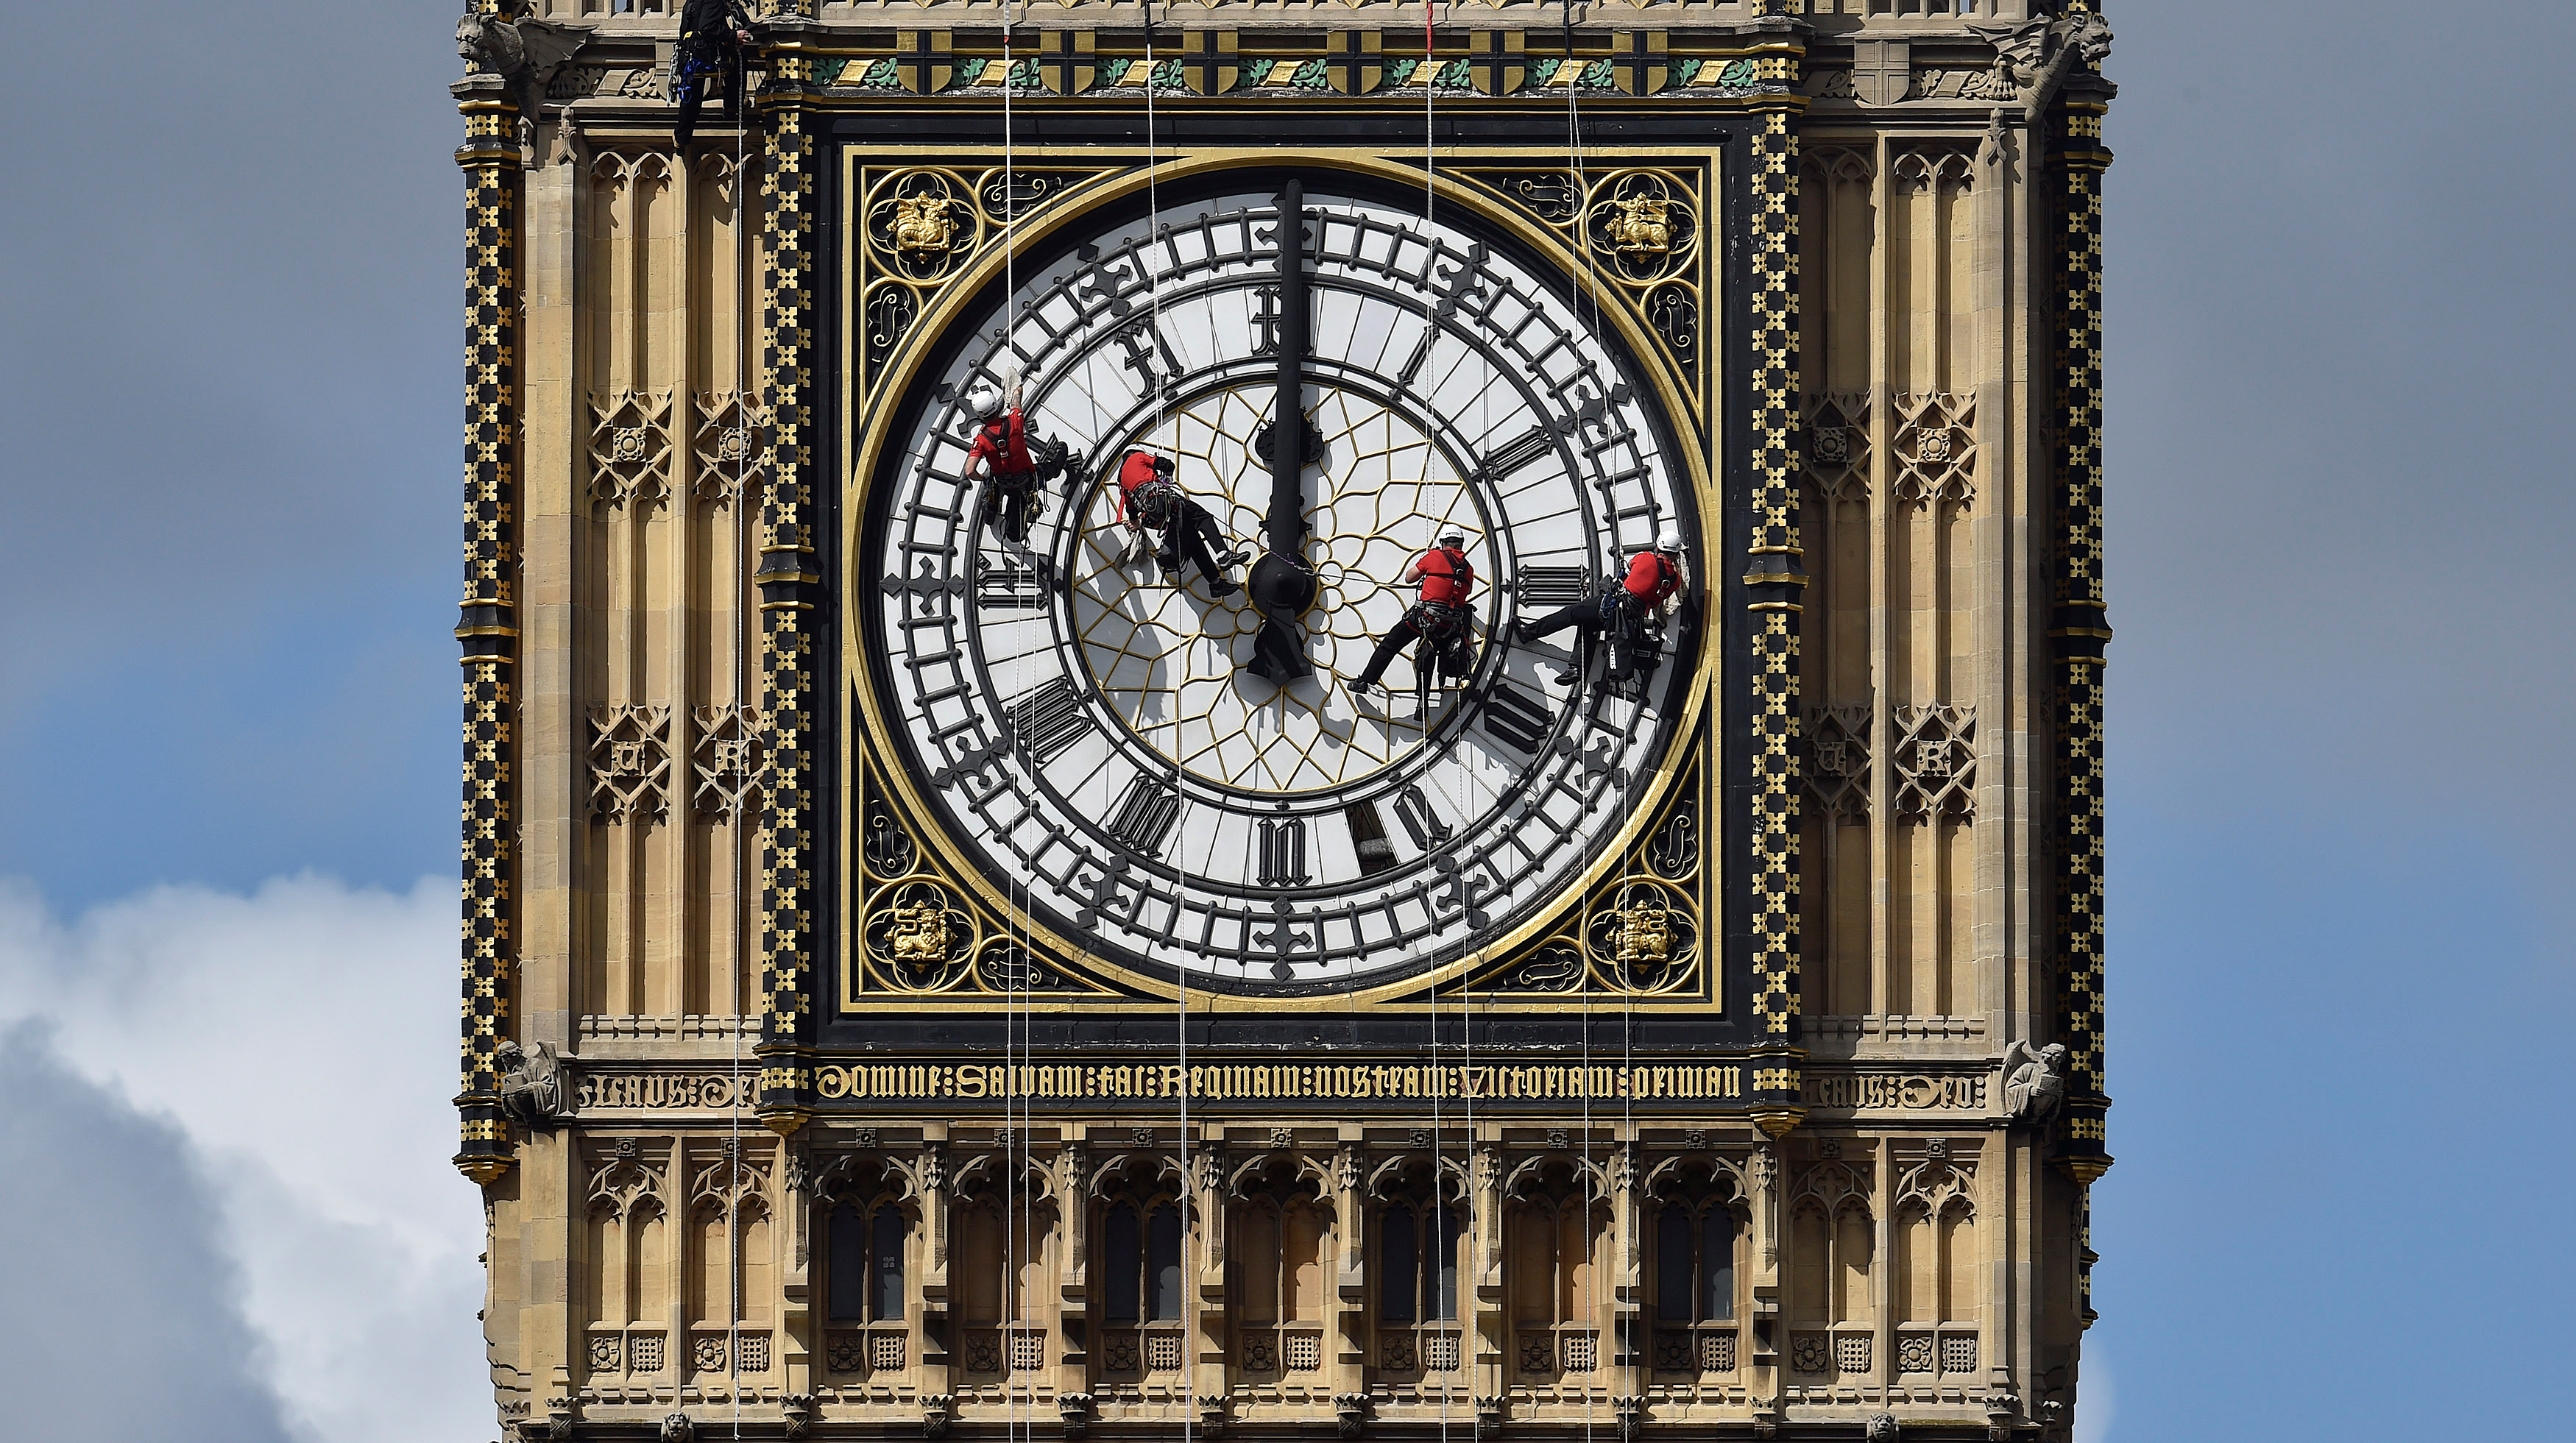 Cleaners abseil down one of the faces of Big Ben, to clean and polish the clock face, above the Houses of Parliament, in central London August 19, 2014.